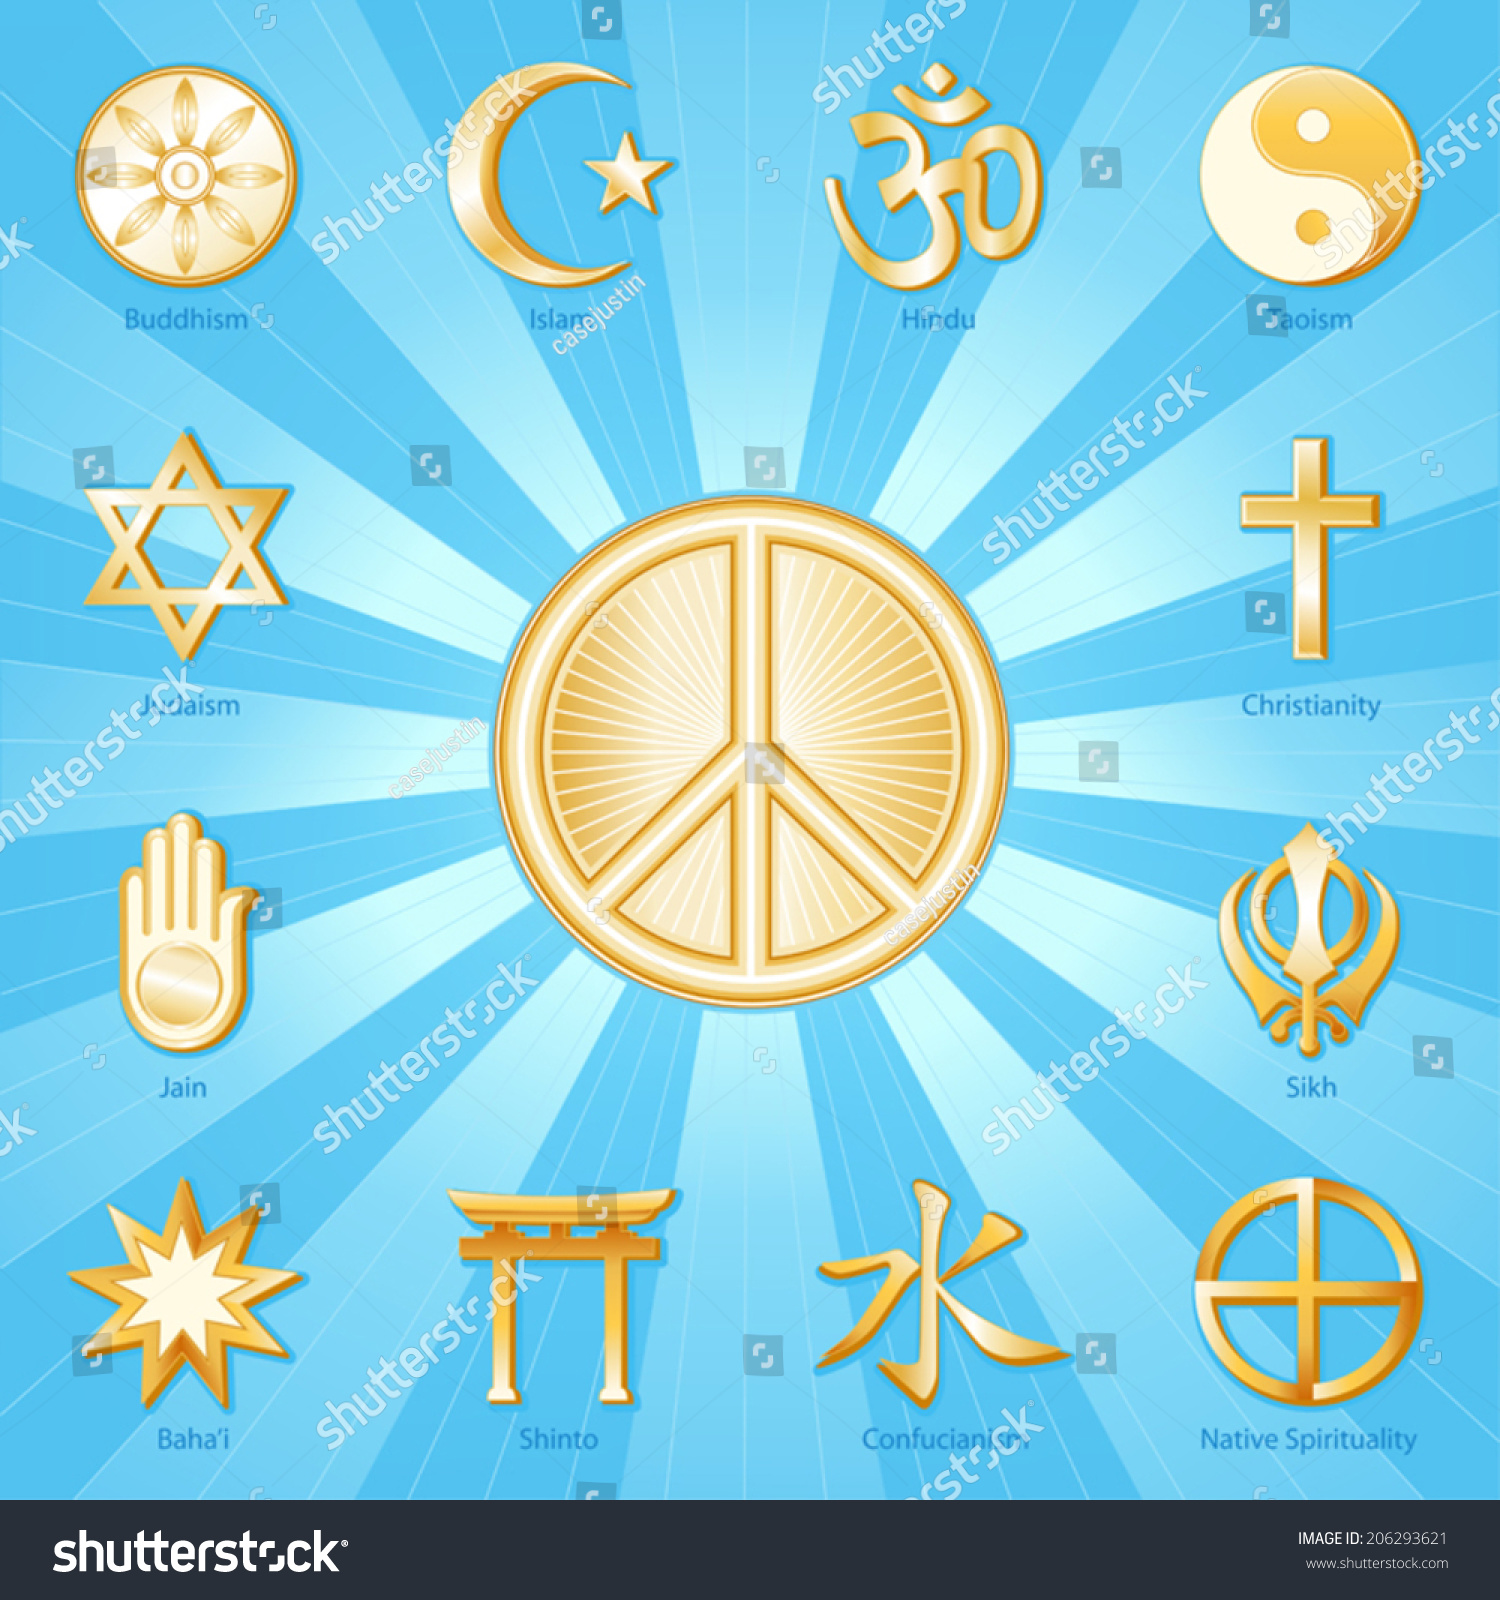 an analysis of hinduism buddhism and taoism Use this chart to compare buddhism, hinduism, traditional judaism, and the  gospel on issues like the way to truth, the meaning of death, and the afterlife.